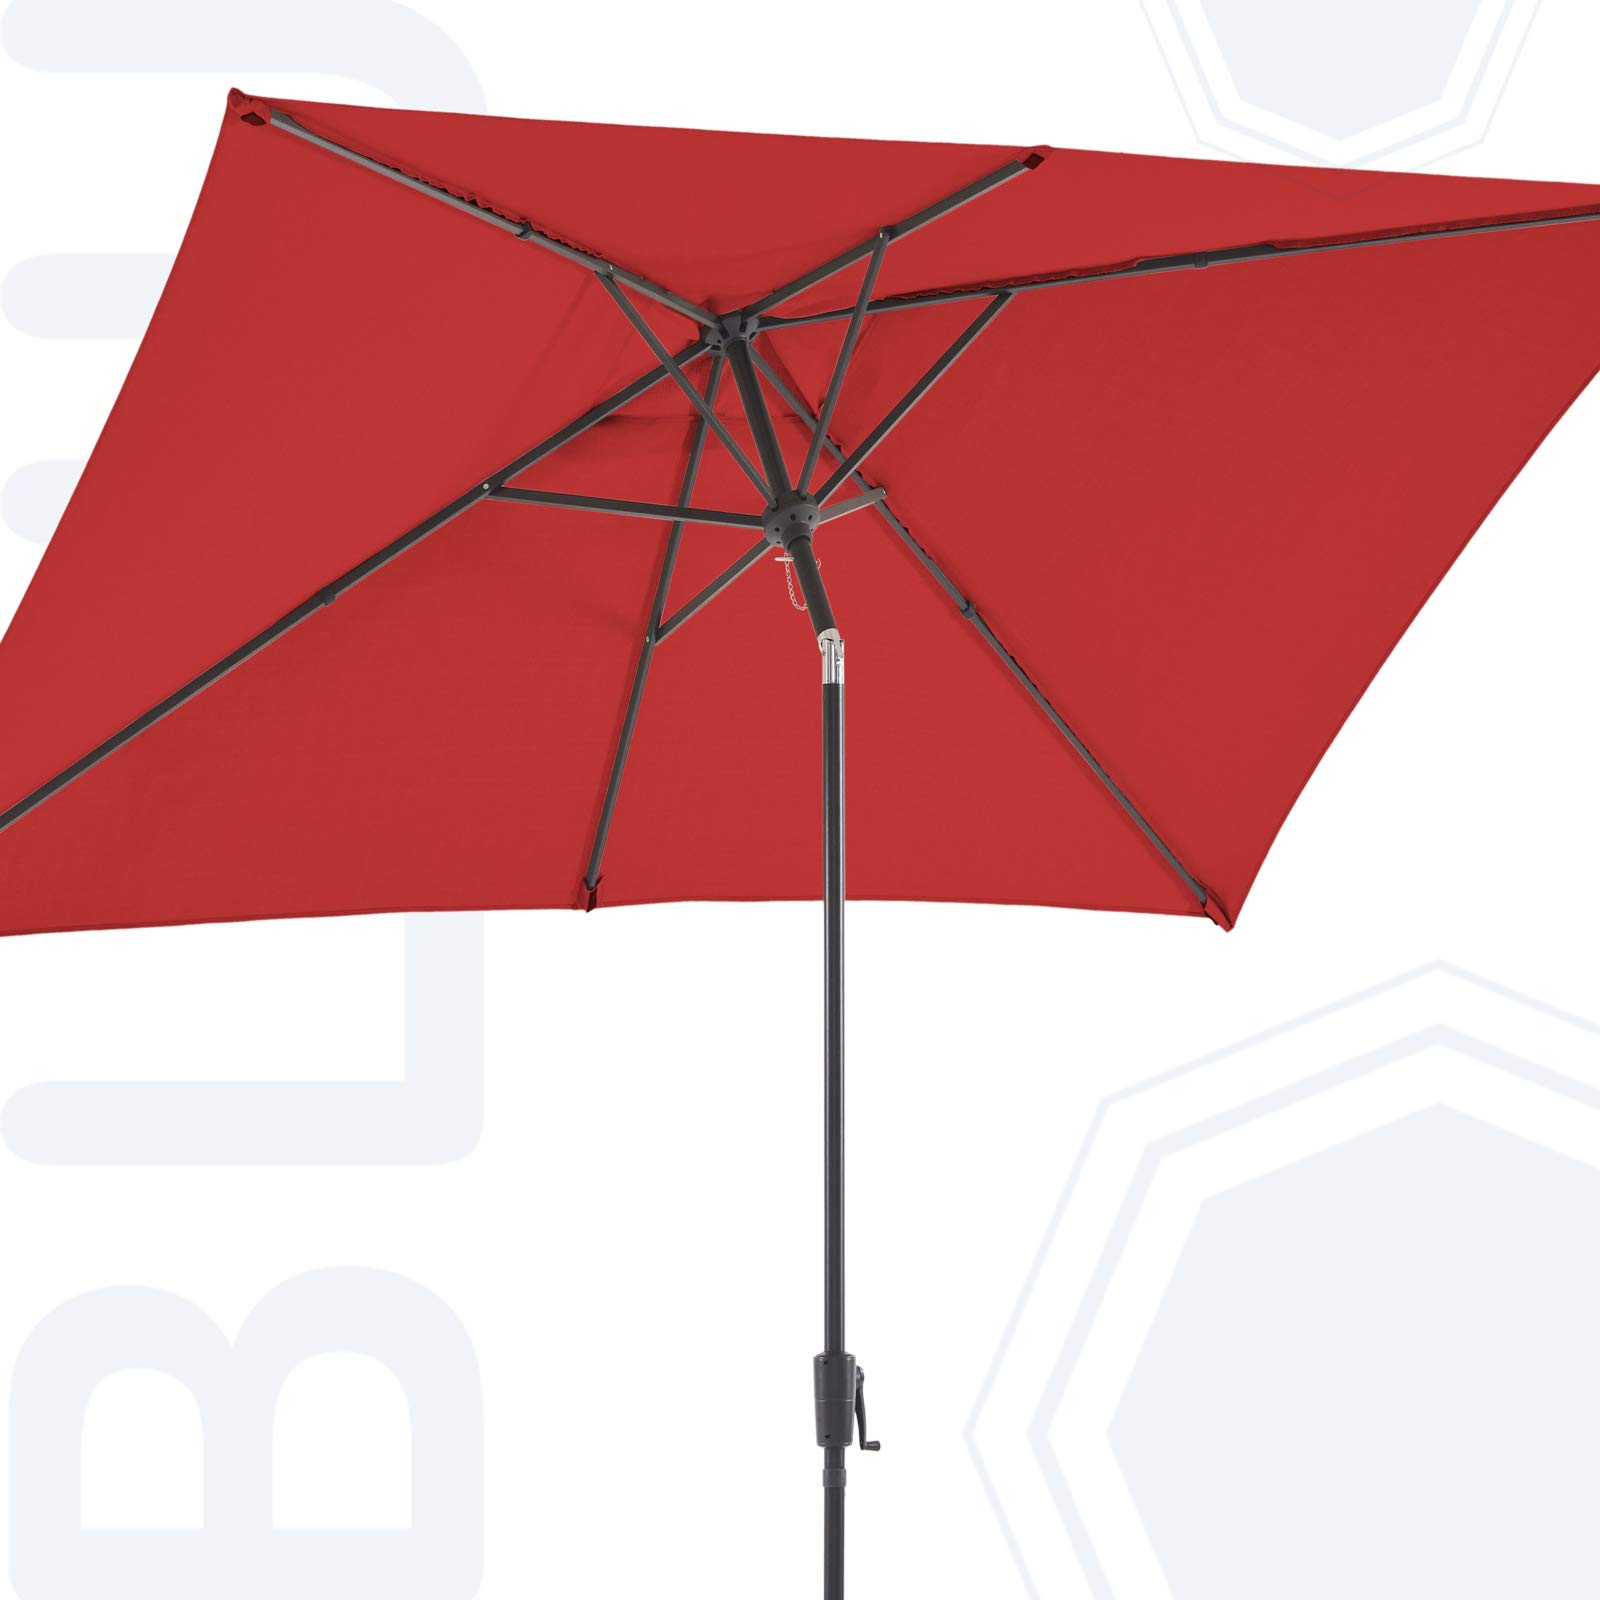 BLUU Olefin Rectangular Patio Market Umbrella Outdoor Table Umbrellas, 3-Year Nonfading Olefin Canopy, Market Center Umbrellas with Push Button Tilt for Garden, Lawn & Pool (6.6 x 9.8 FT, Apple Red)